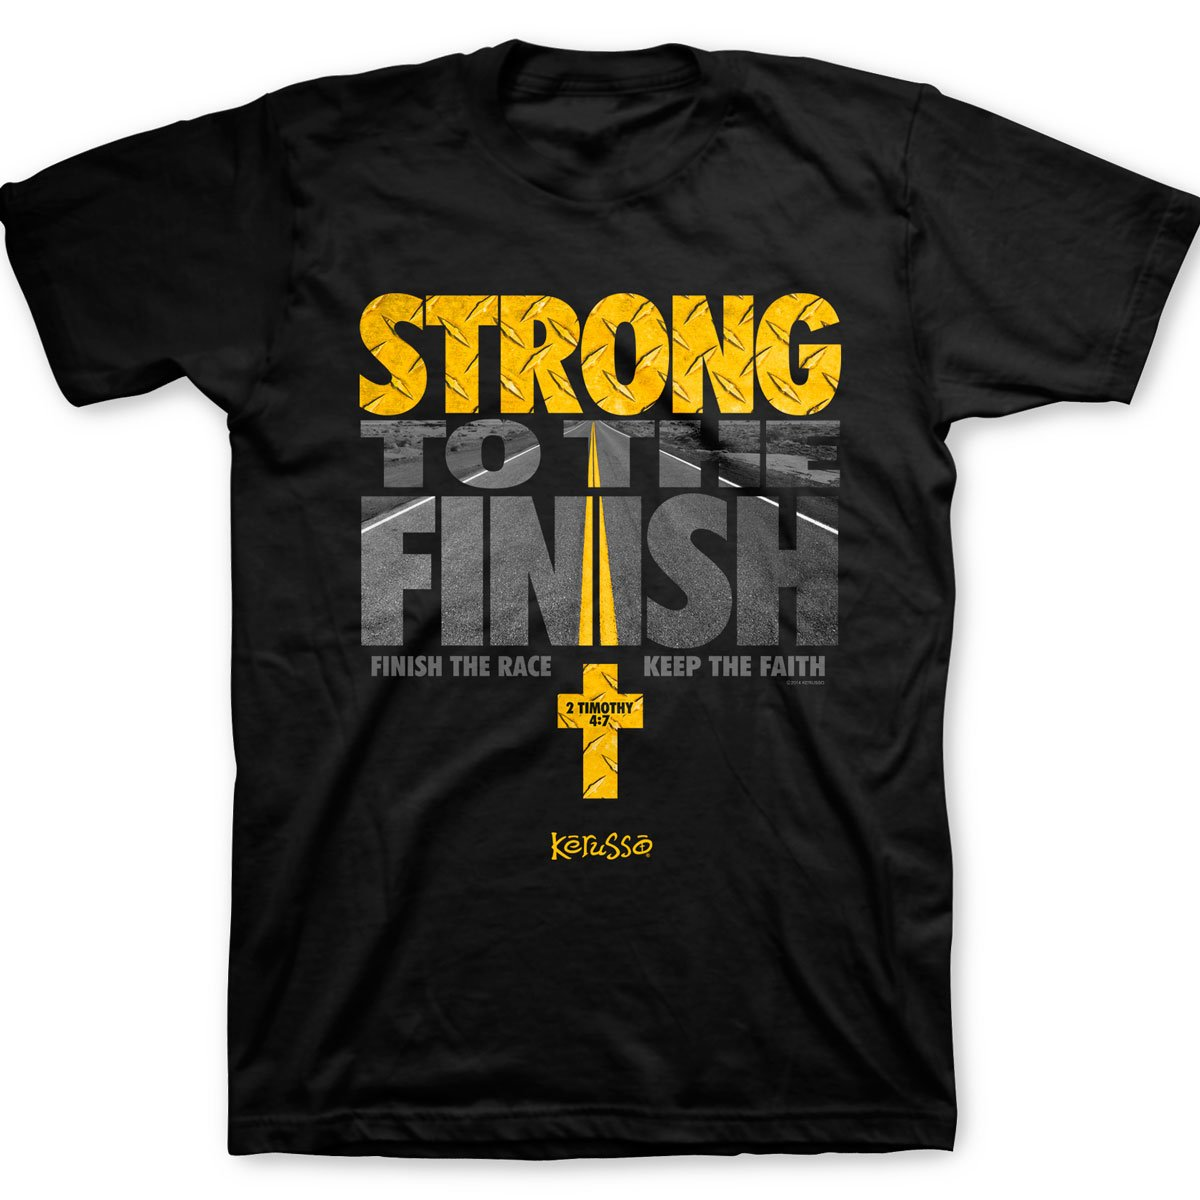 Strong To The Finish T Shirt Christian Fashion Gifts